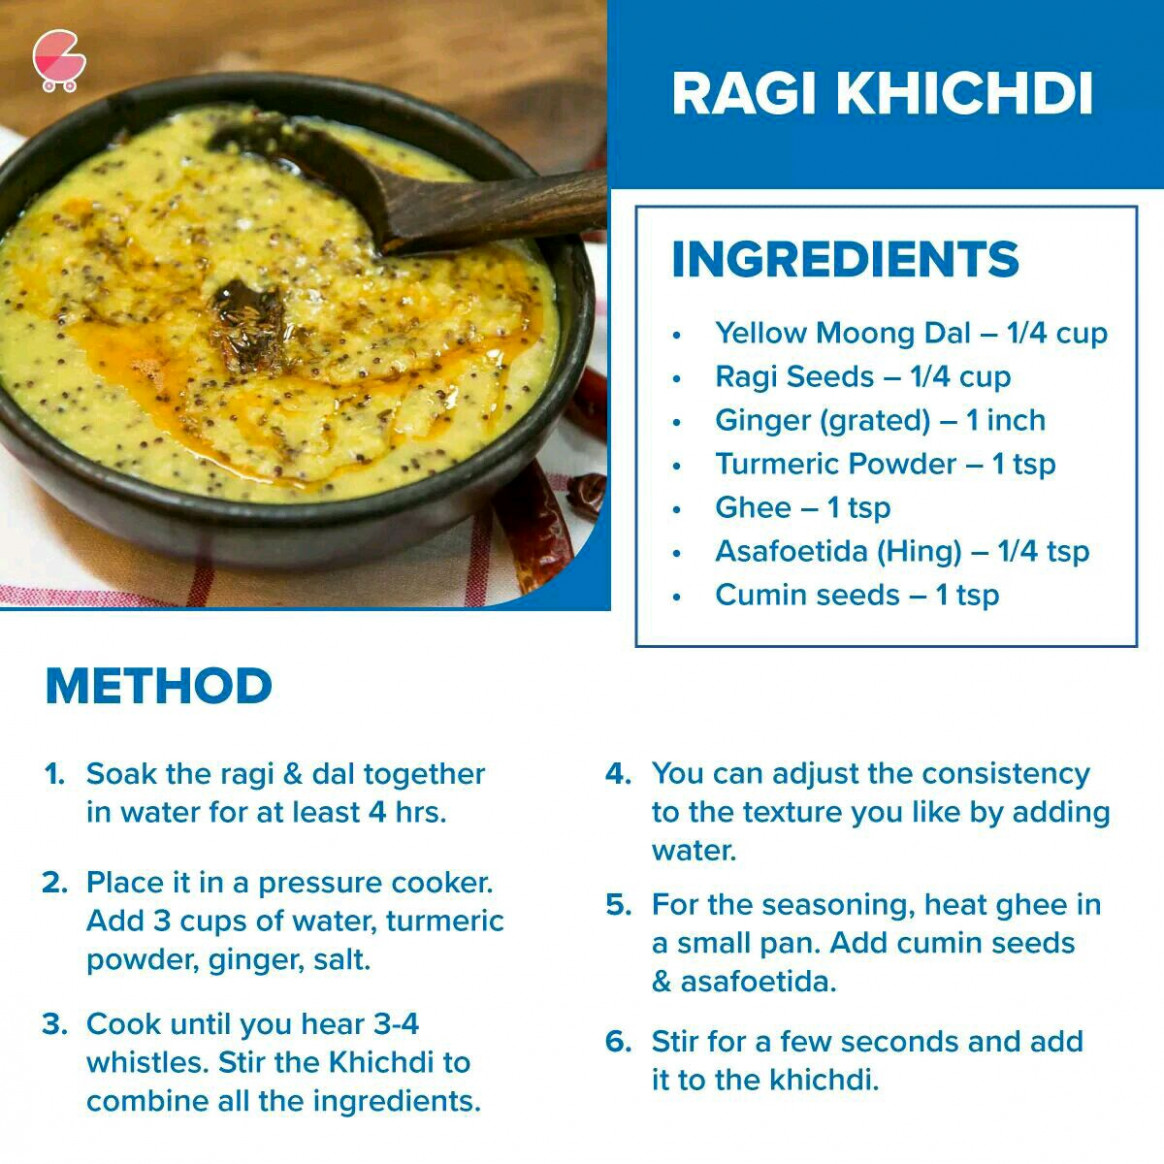 plz suggest some raggi receipes for my one year old baby - 1 year old baby food recipes